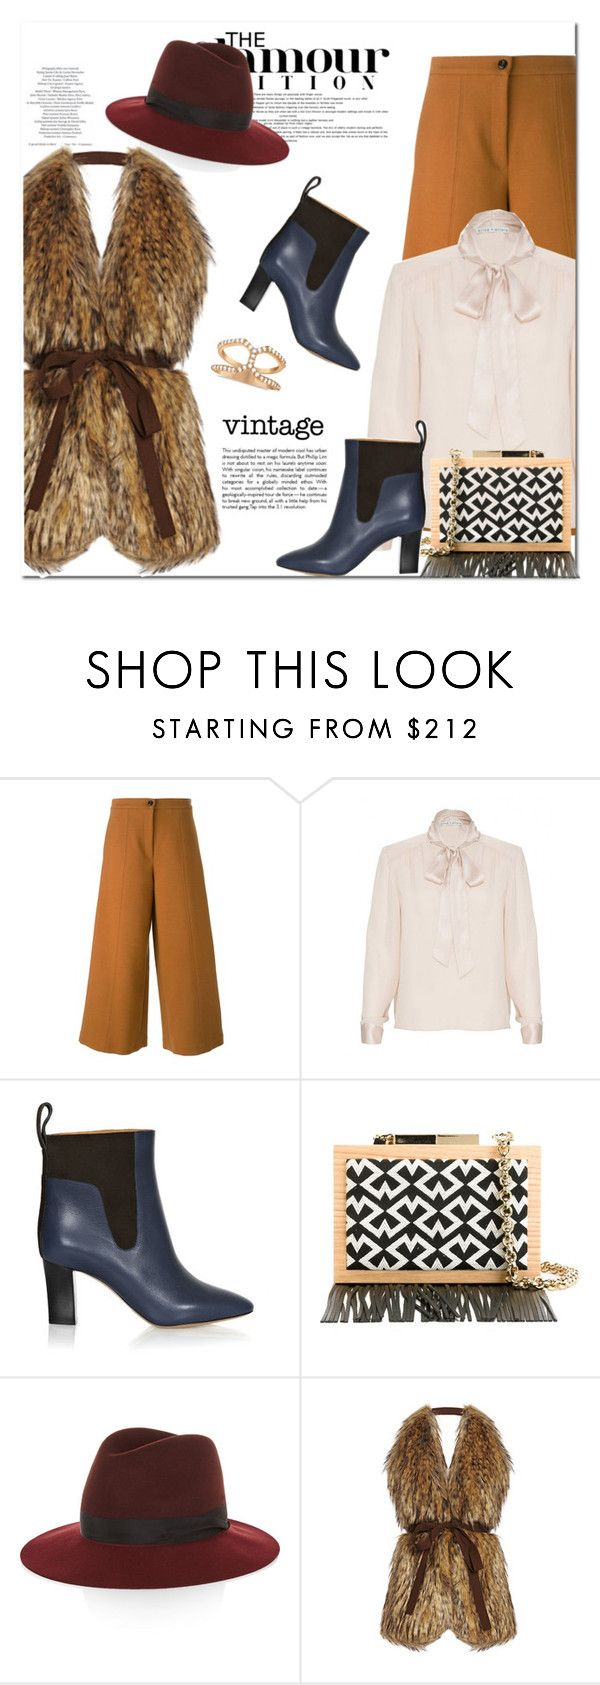 """""""Vintage touches"""" by gifra ❤ liked on Polyvore featuring VIVETTA, Alice + Olivia, Chloé, LAURAFED, Libertine, rag & bone, Stella Jean and vintage"""